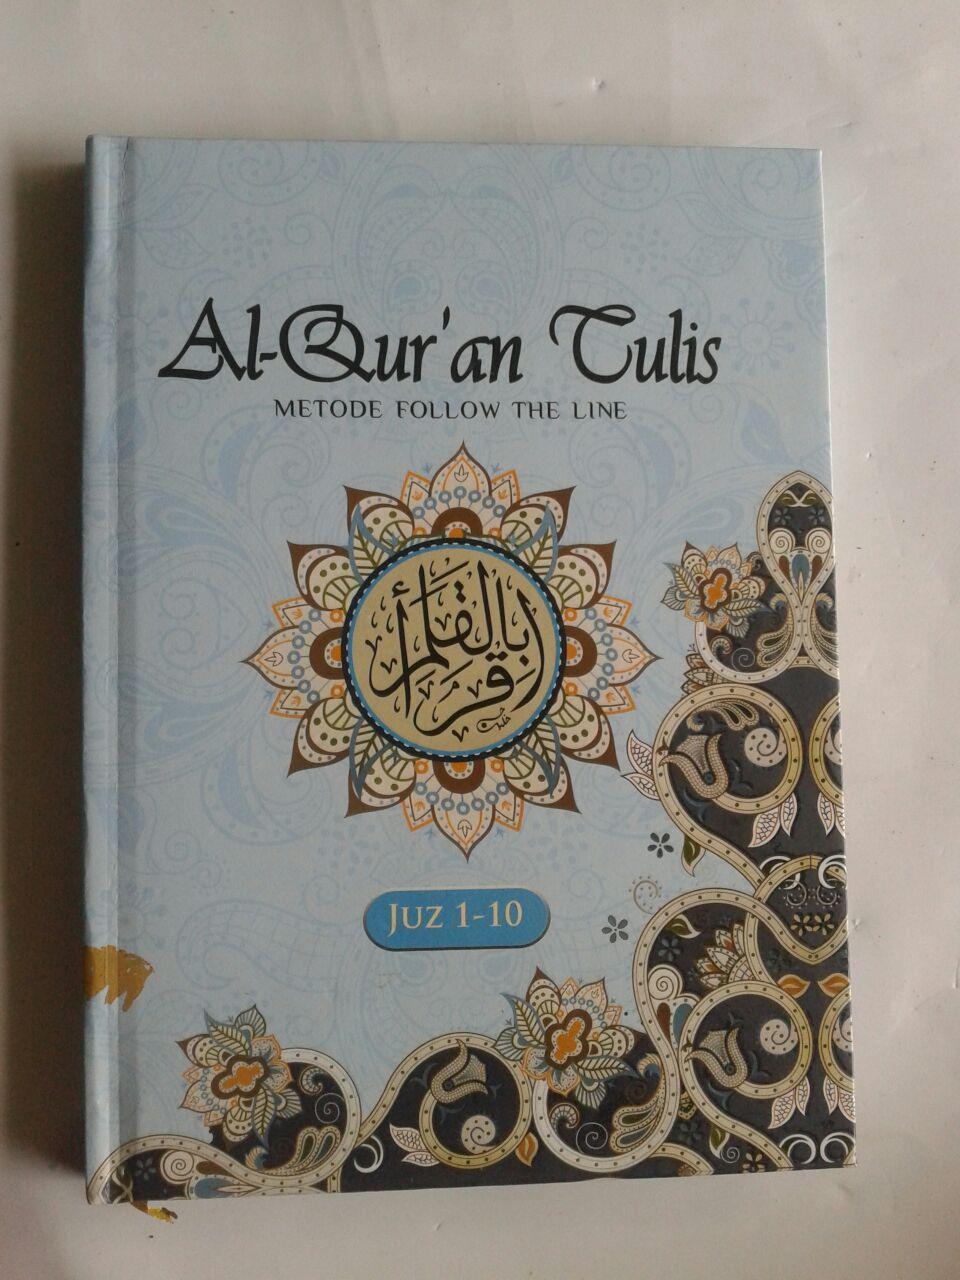 Al-Qur'an Tulis Metode Follow The Line 1 Set 3 Jilid cover